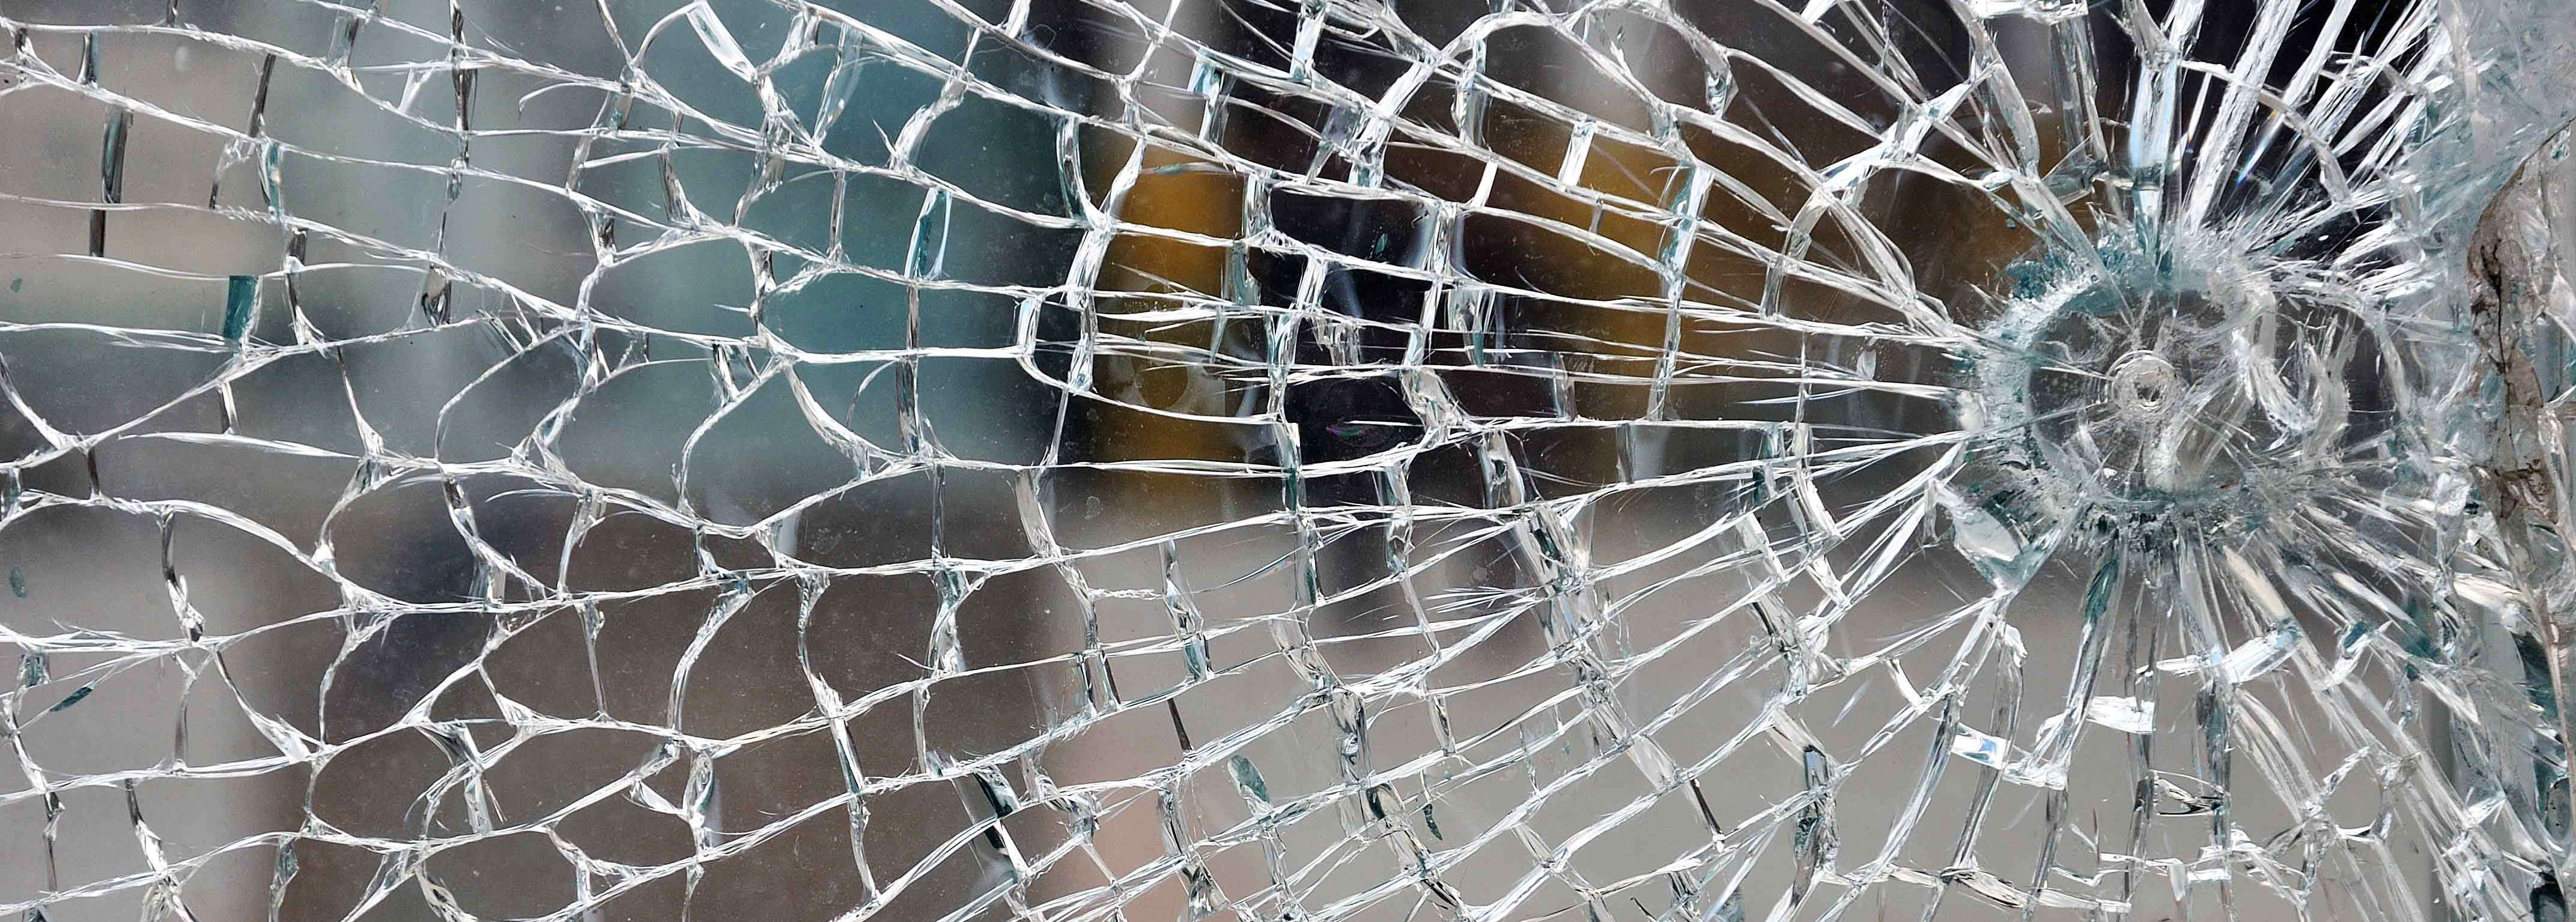 Our specialist glaziers in Hamilton can get to all the hard to reach places